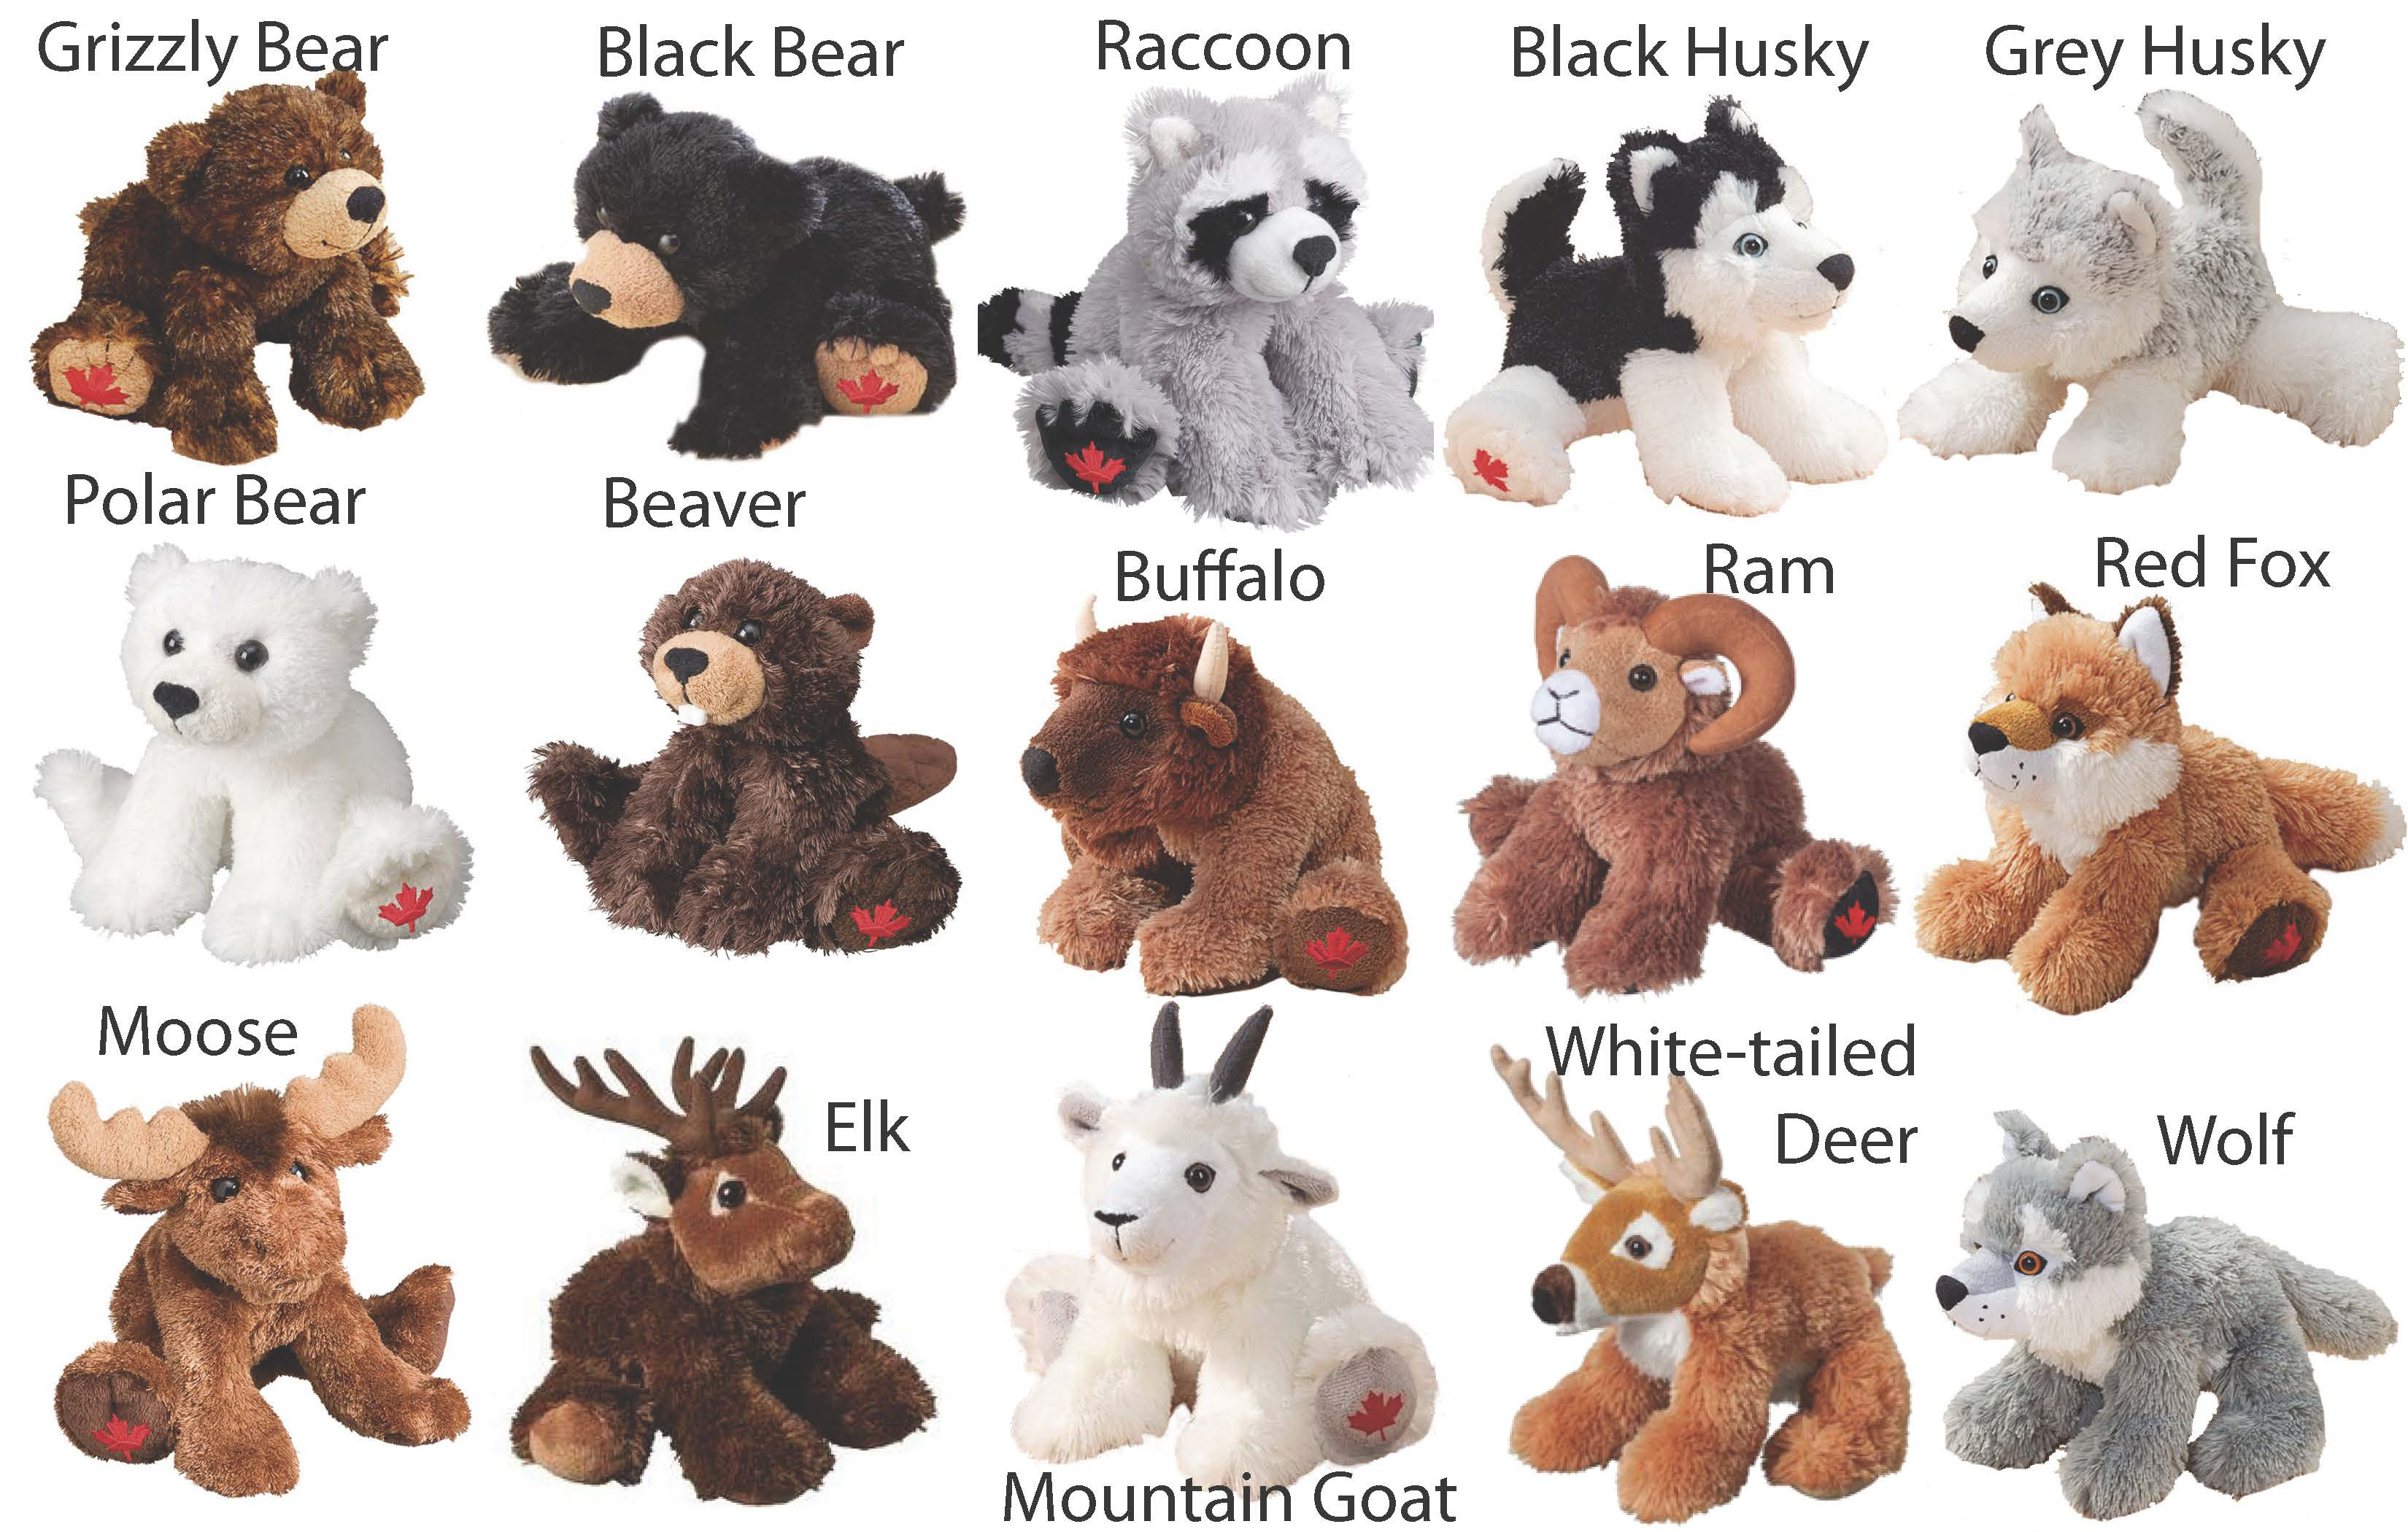 Maplefoot Floppies SPECIAL OFFER - Buy 4 books, get a Maplefoot Floppy Critter for $0.01! With every fourth book purchased choose an adorable Floppy Critter ($10.00 value) to be shipped with your books for only one penny more.  Choose from the following: Beaver, Black Bear, Black Husky, Buffalo, Elk, Mountain Goat, Grey Husky, Grizzly Bear, Moose, Polar Bear, Raccoon, Ram, Red Fox, White-tailed Deer, or Wolf, along with an alternate selection (in case your first choice is out of stock from our manufacturer) and add to cart below. Must be ordered before books have been shipped.